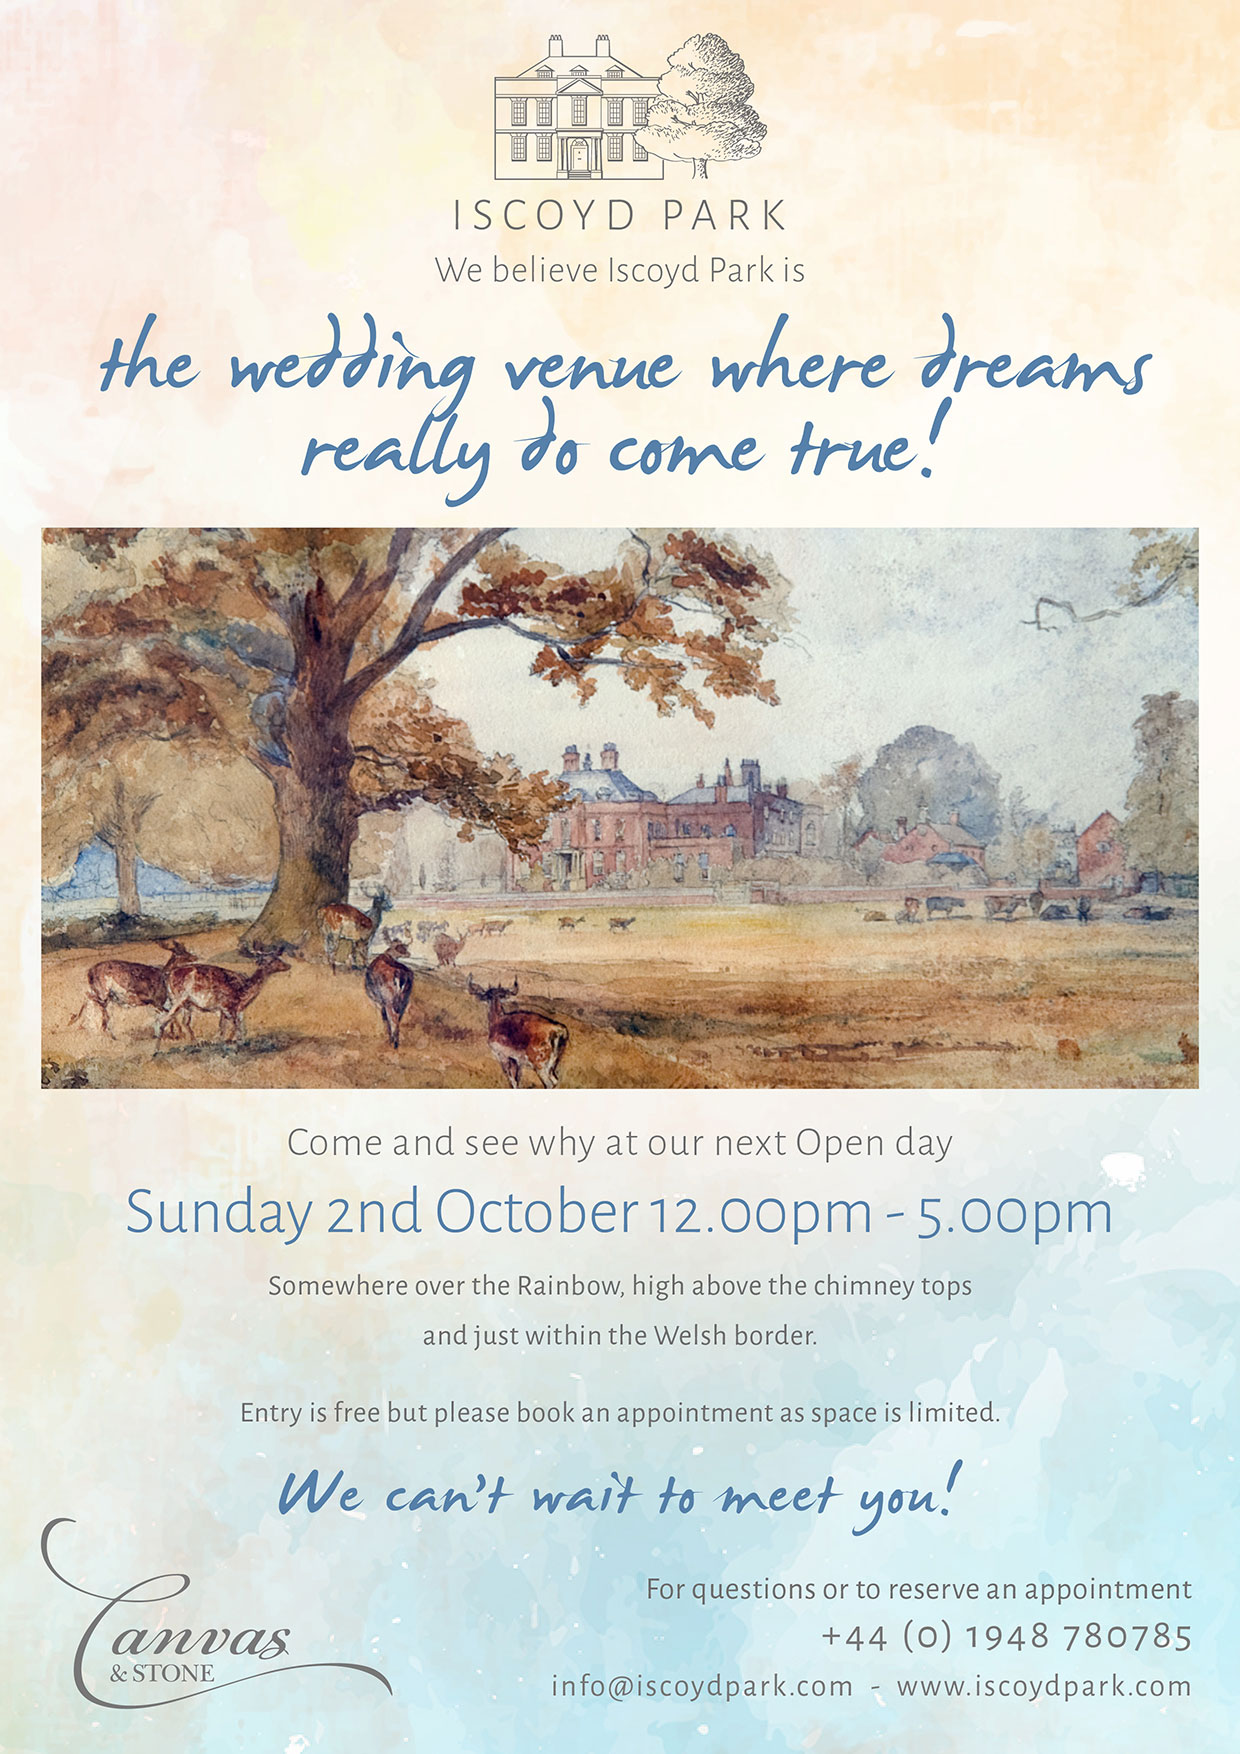 Wedding open day at Iscoyd Park, October 2nd 2016